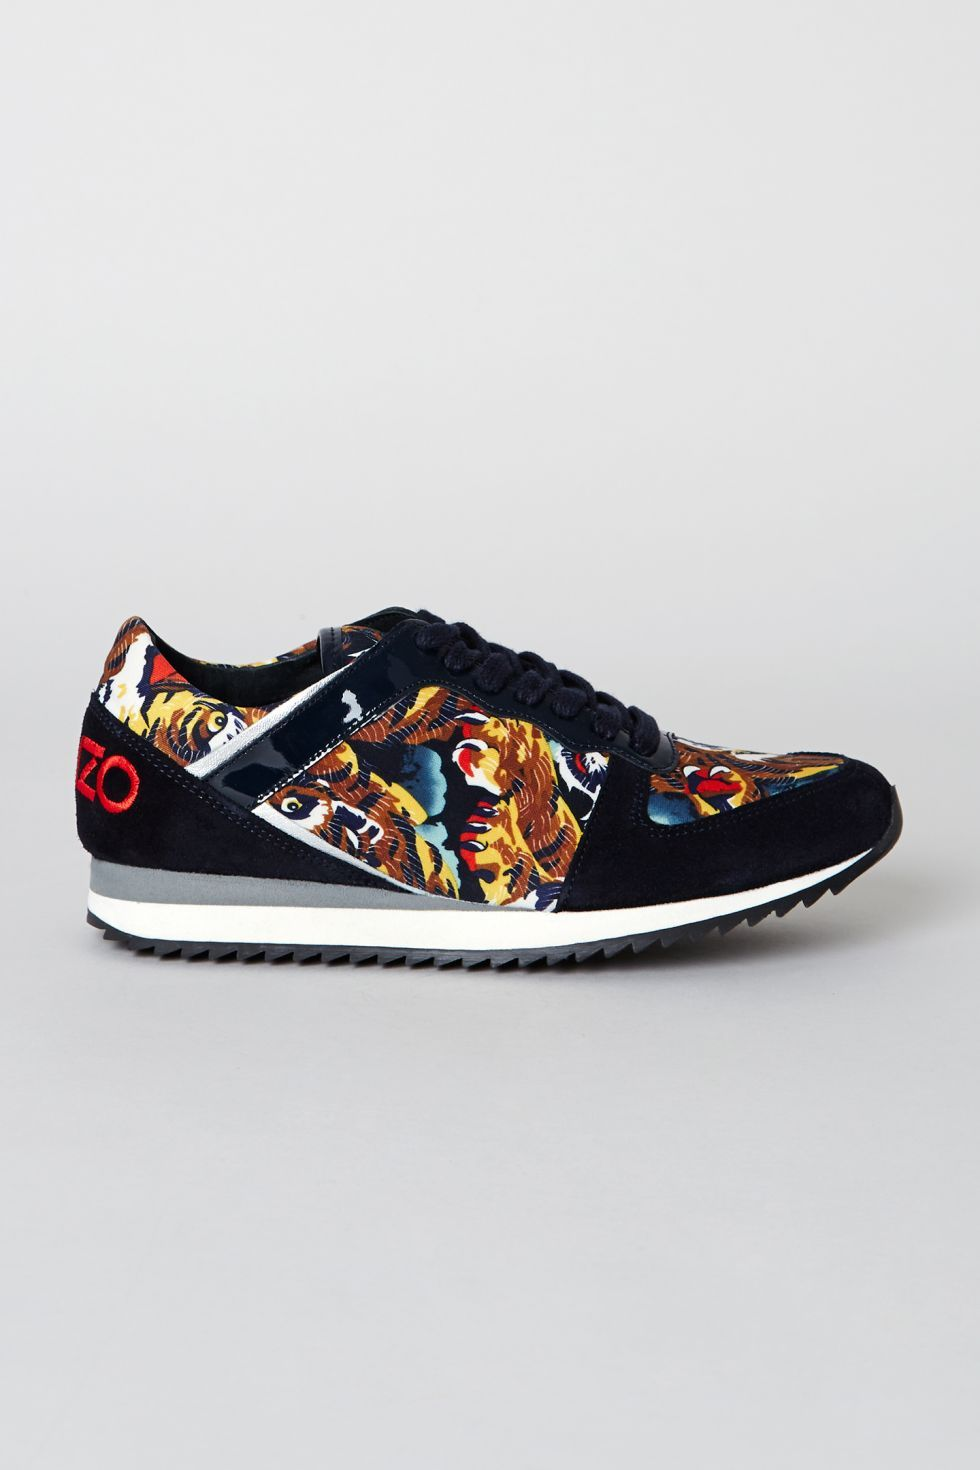 62f443d18716d5 Sneakers Flying Tiger Kenzo - Chaussures Kenzo Femme - E-Shop Kenzo ...